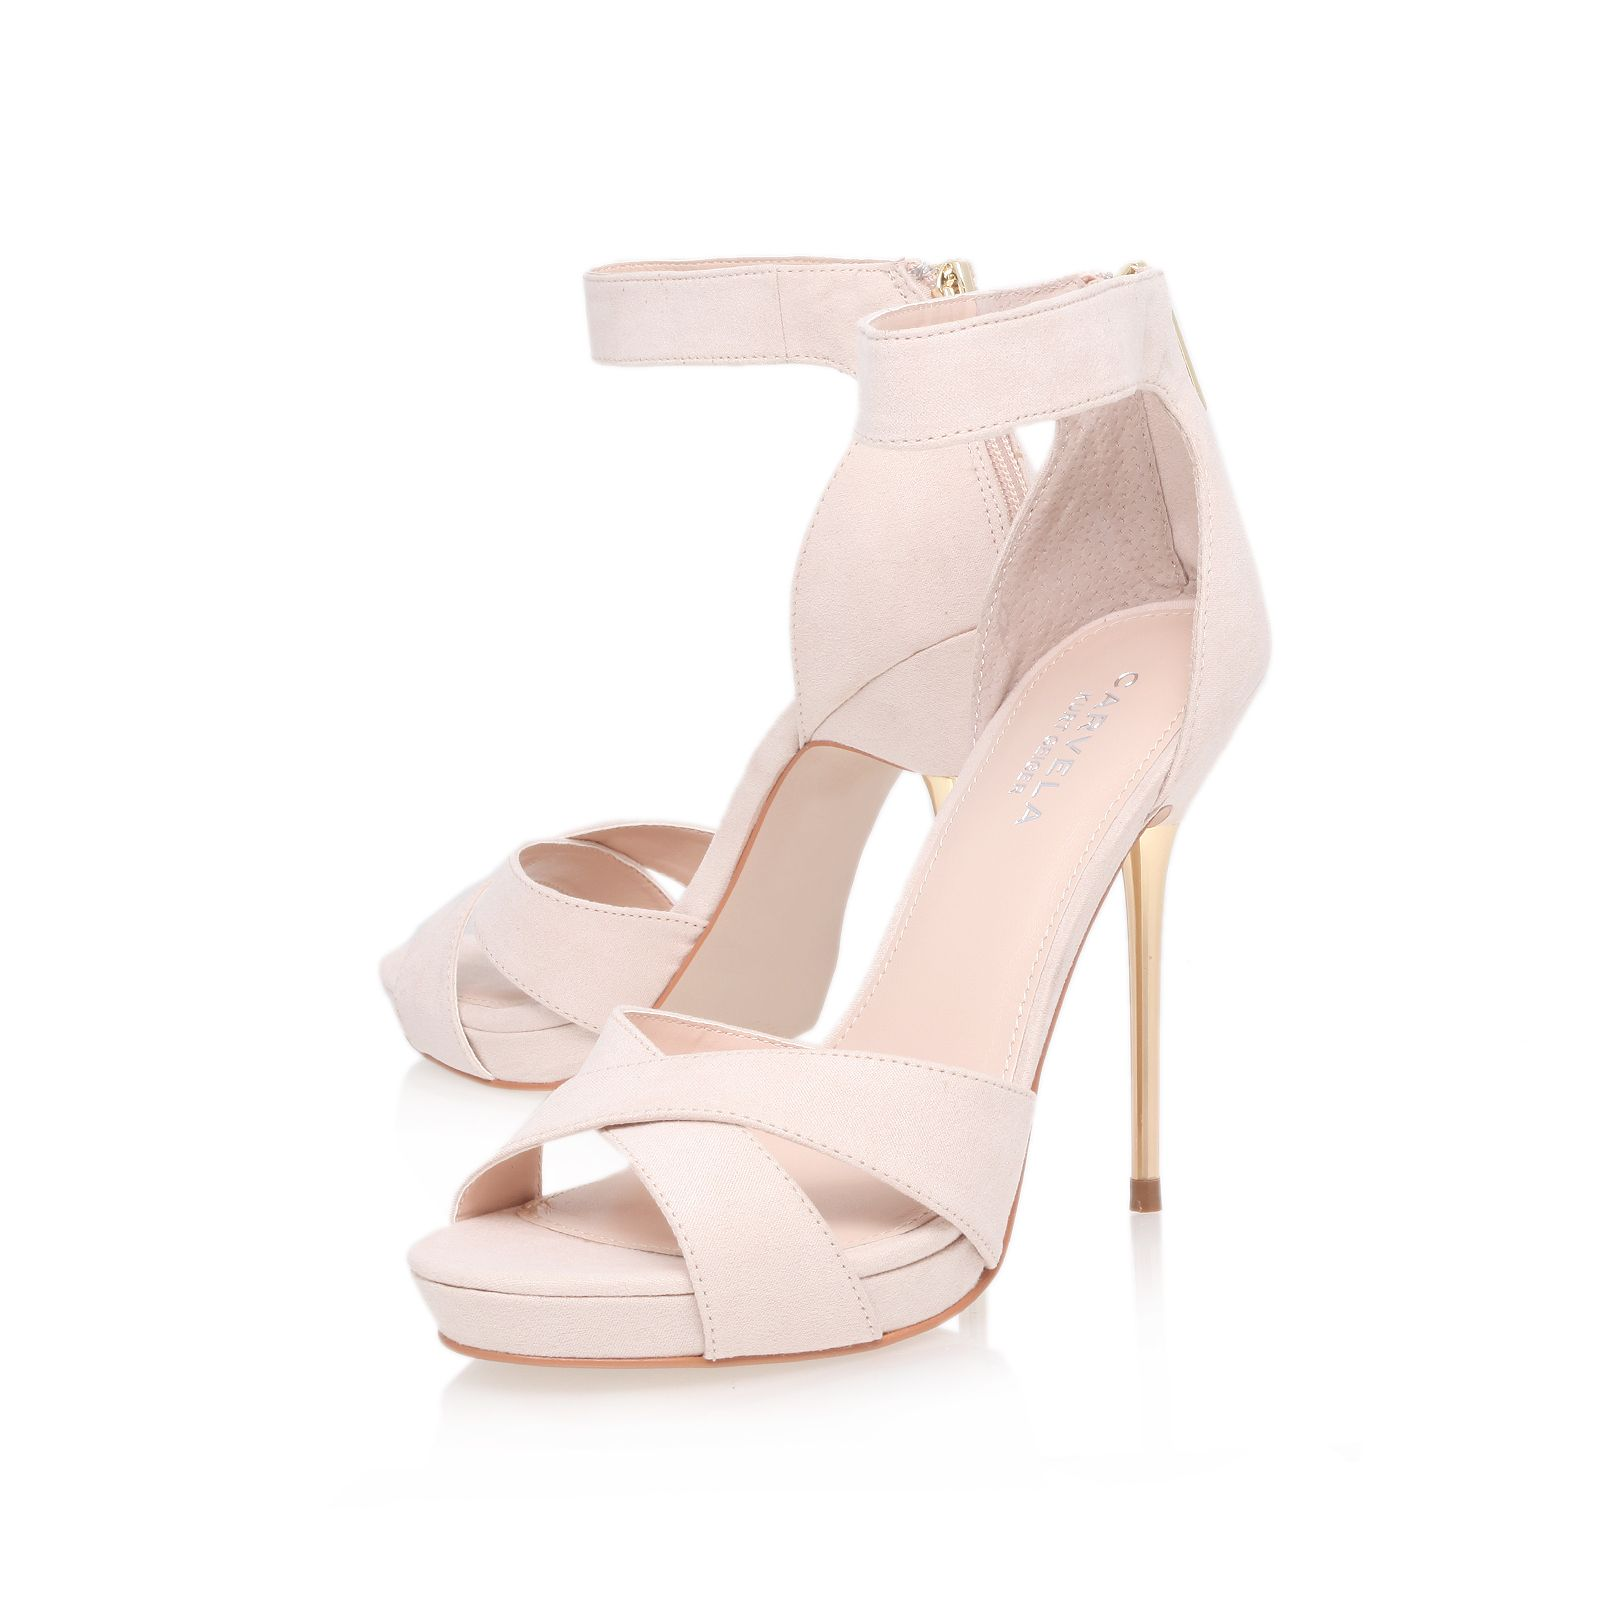 Jewel high heel sandals